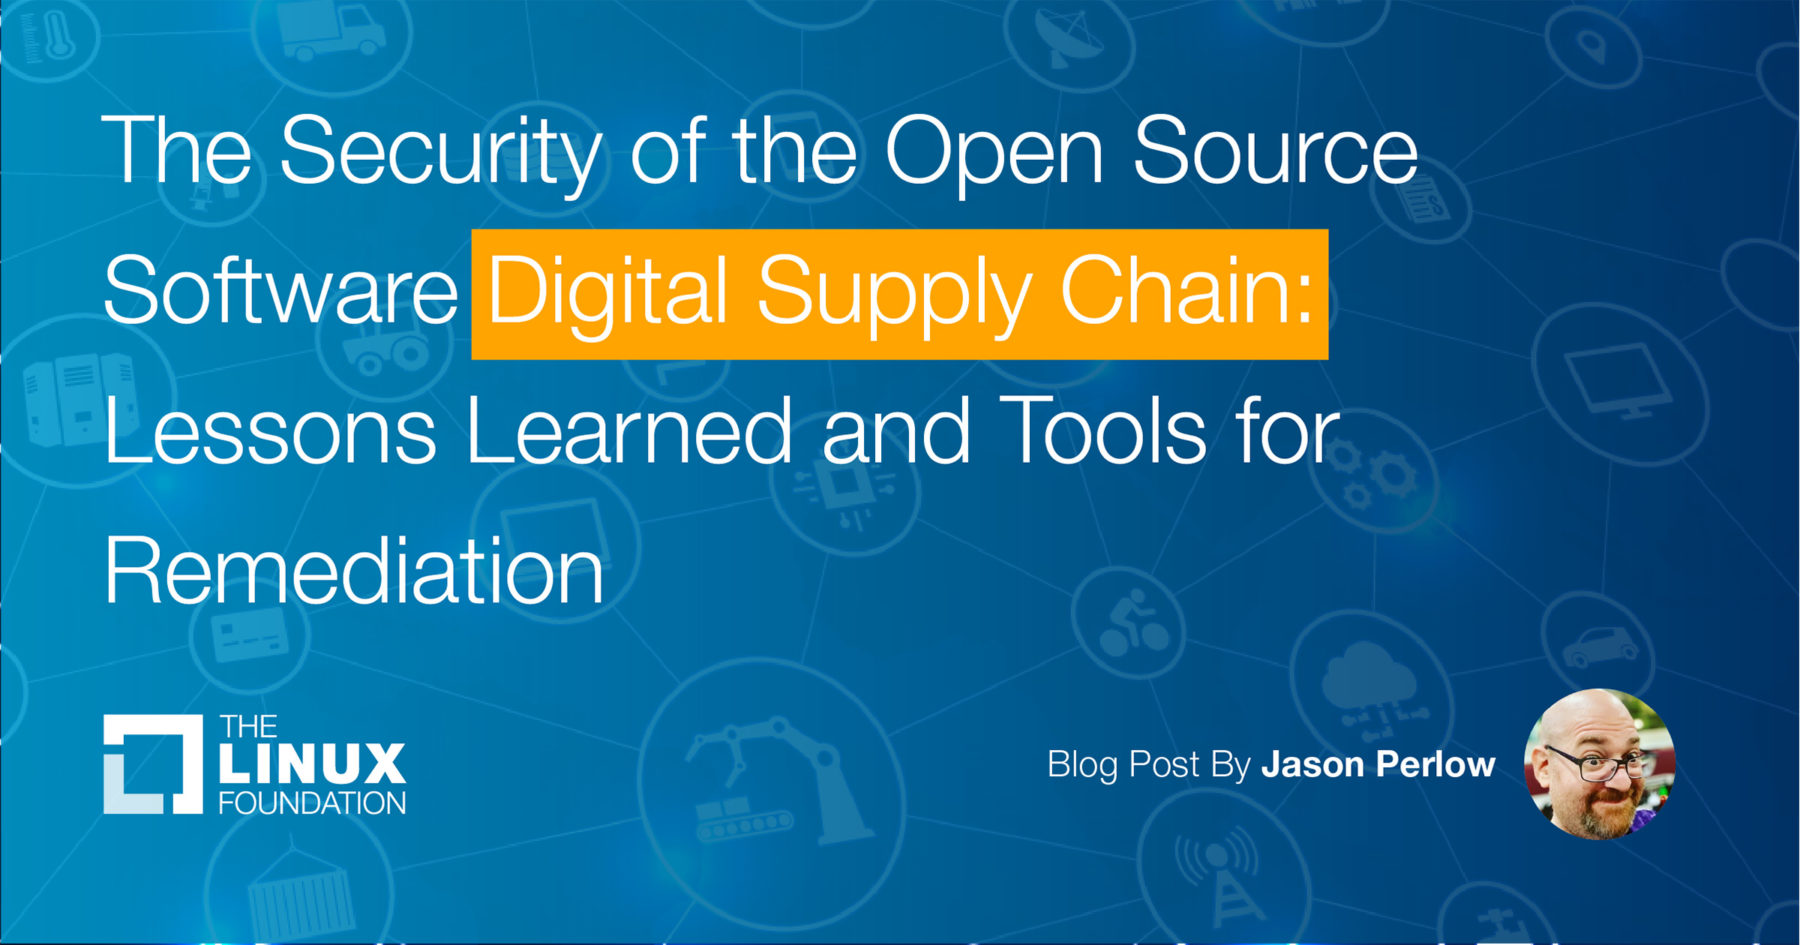 Security of Open Source Digital Supply Chain